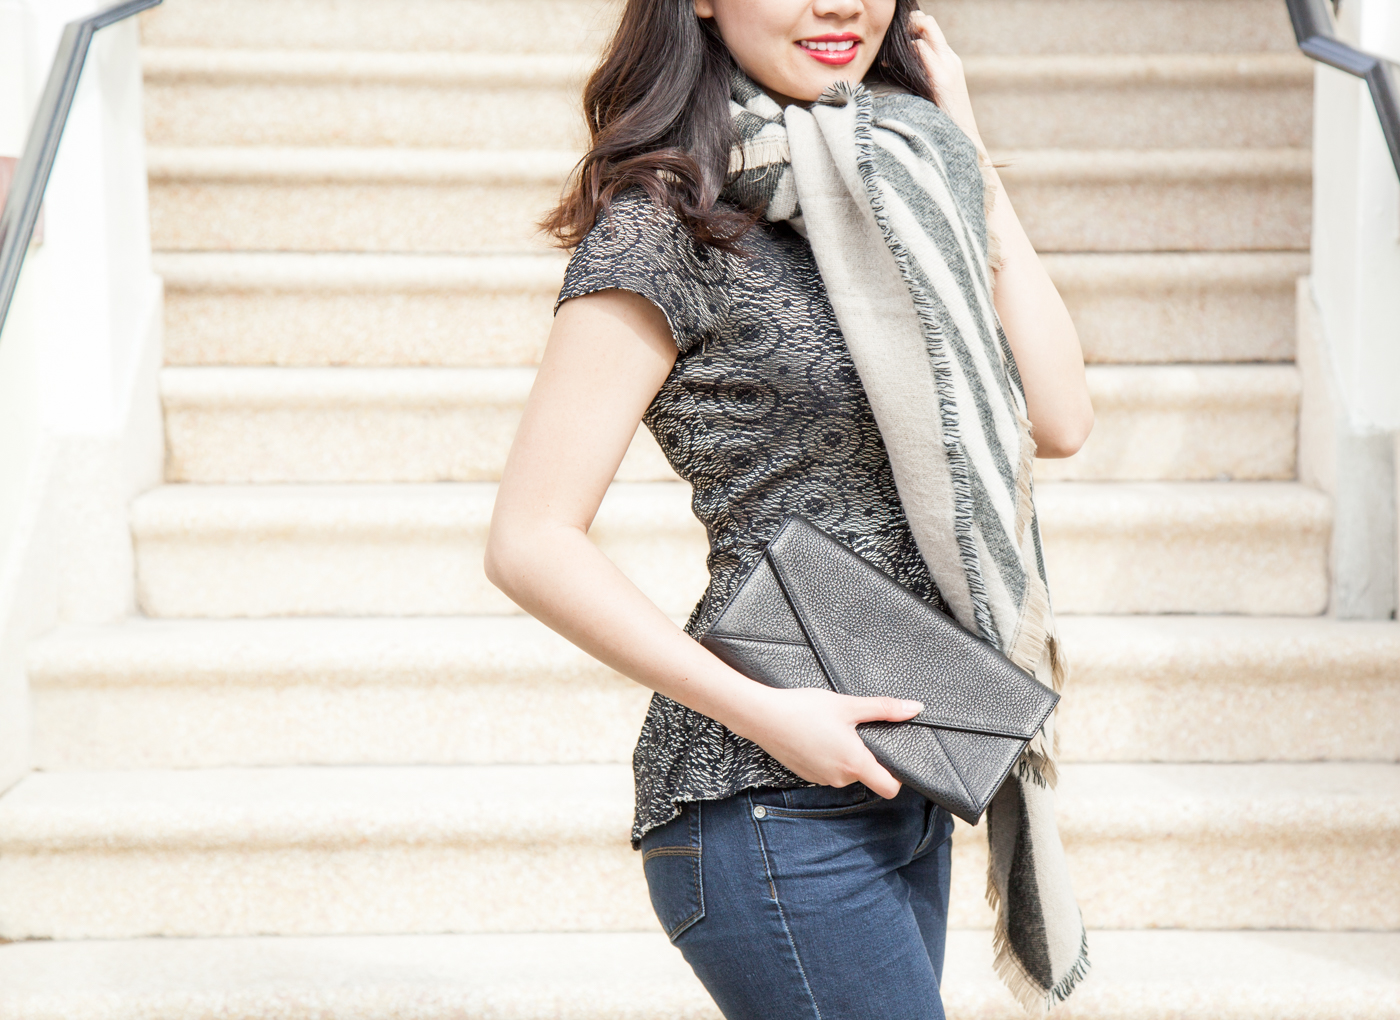 Cuyana evelope leather clutch | via The Chic Diary